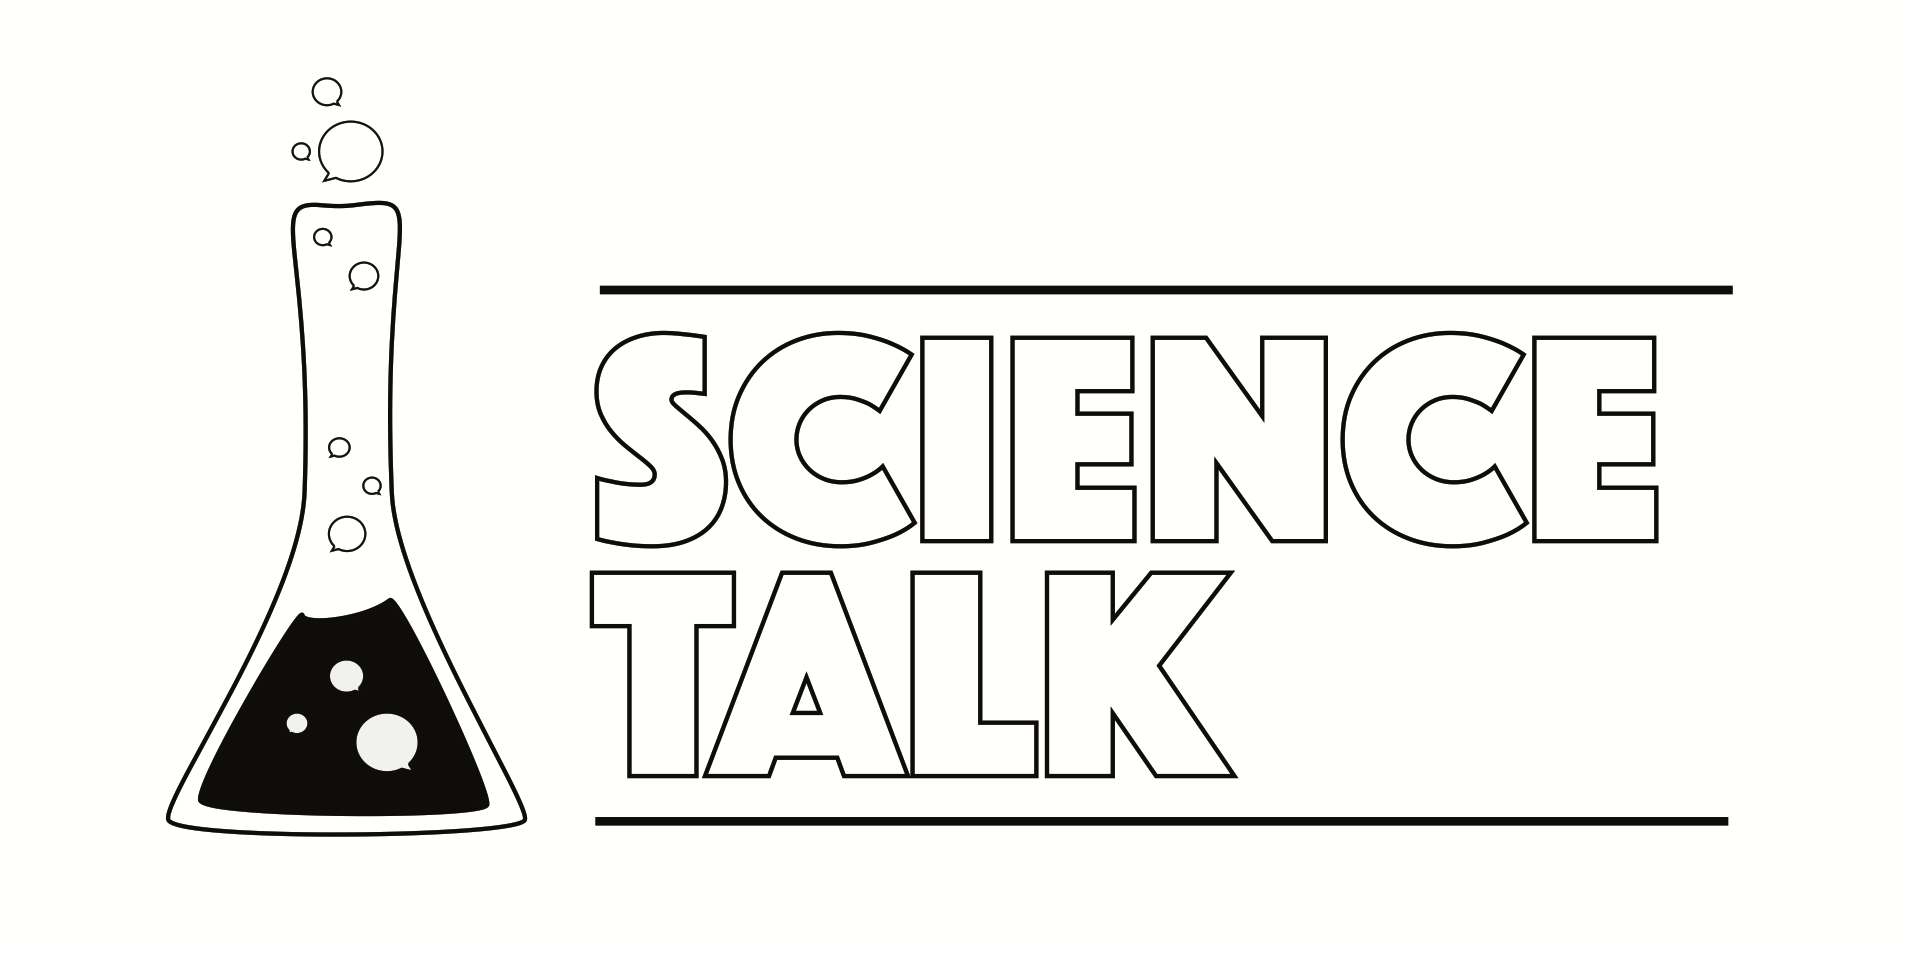 a nonprofit dedicated to promoting the best ideas in science communication  - This year we are partners with Science Talk. The Science Talk team is available to advise anyone interested in honing their communication skills.